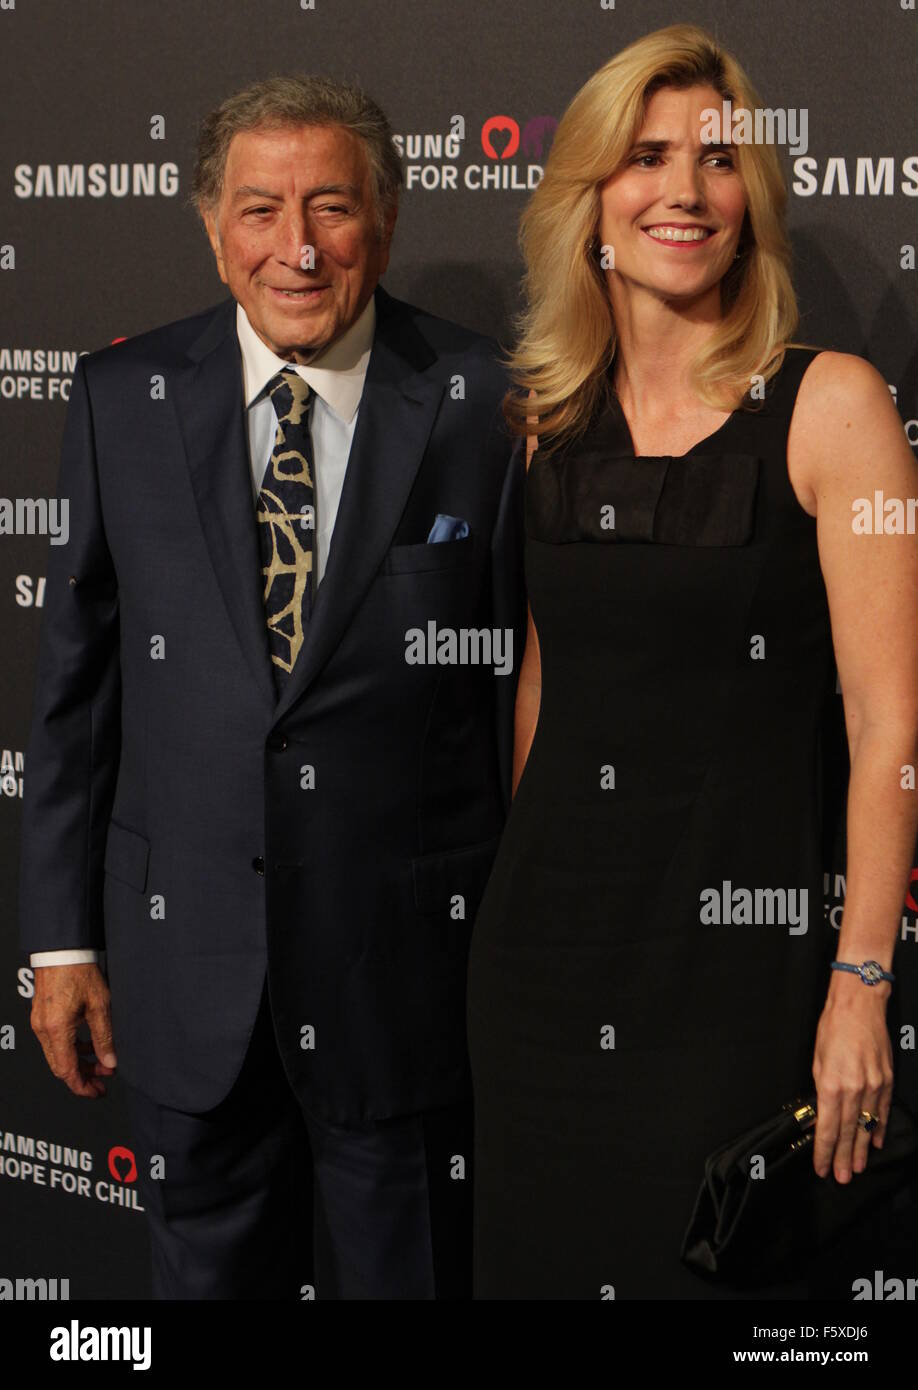 Samsung Hope For Children Gala held at the Hammerstein Ballroom - Arrivals  Featuring: Tony Bennett, Susan Crow - Stock Image